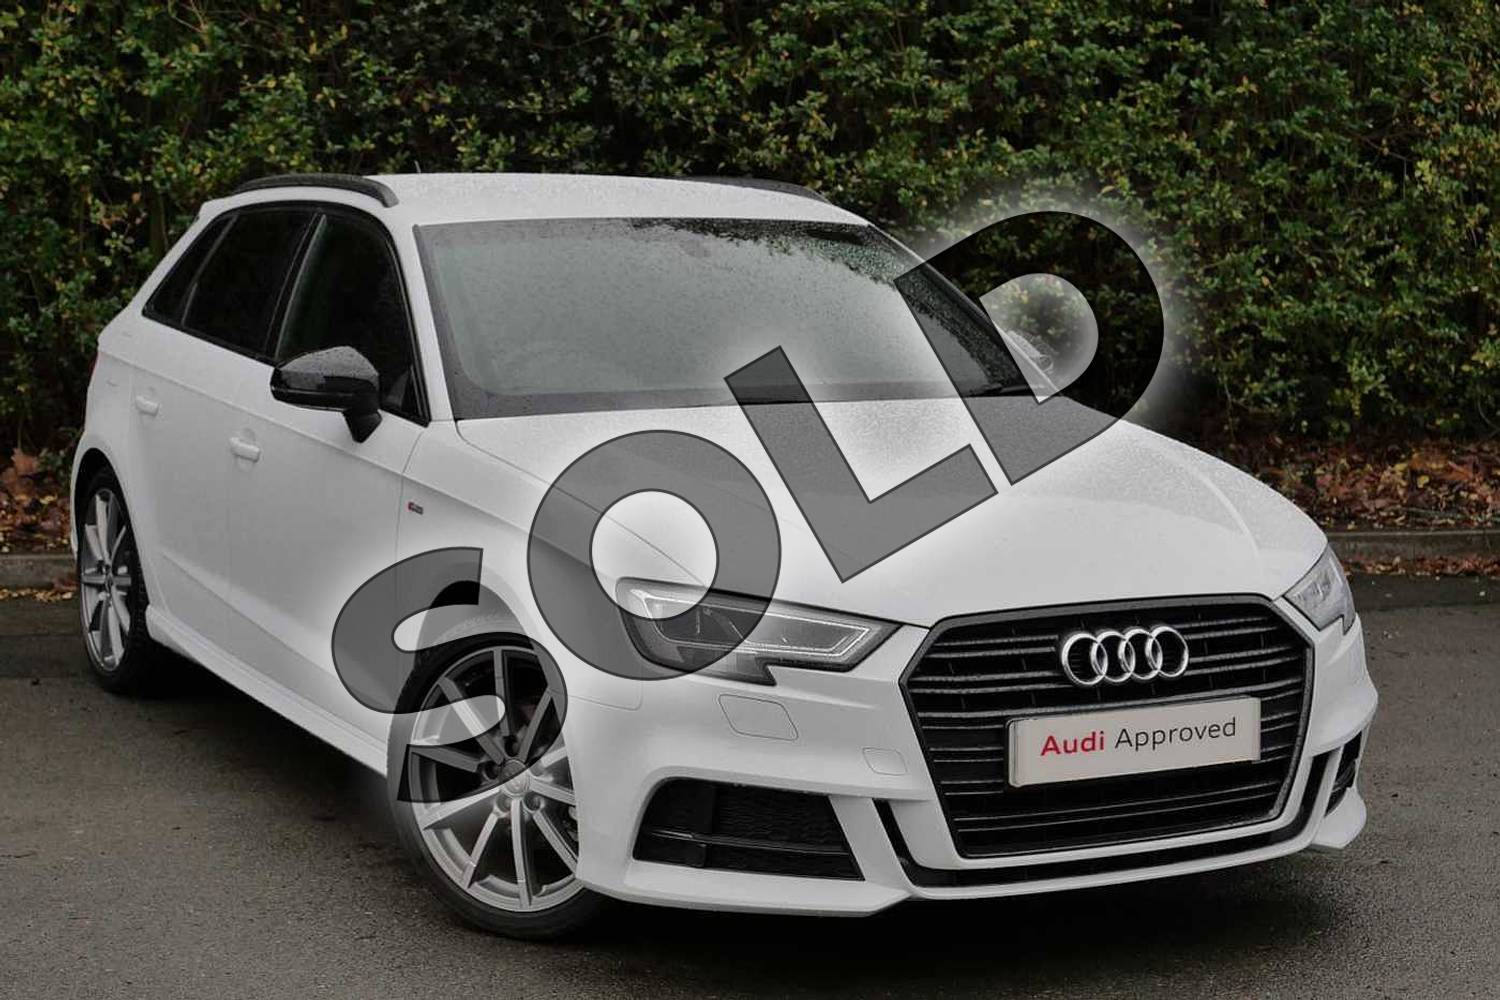 2018 Audi A3 Diesel Sportback Diesel 30 TDI 116 Black Edition 5dr in Glacier White Metallic at Worcester Audi